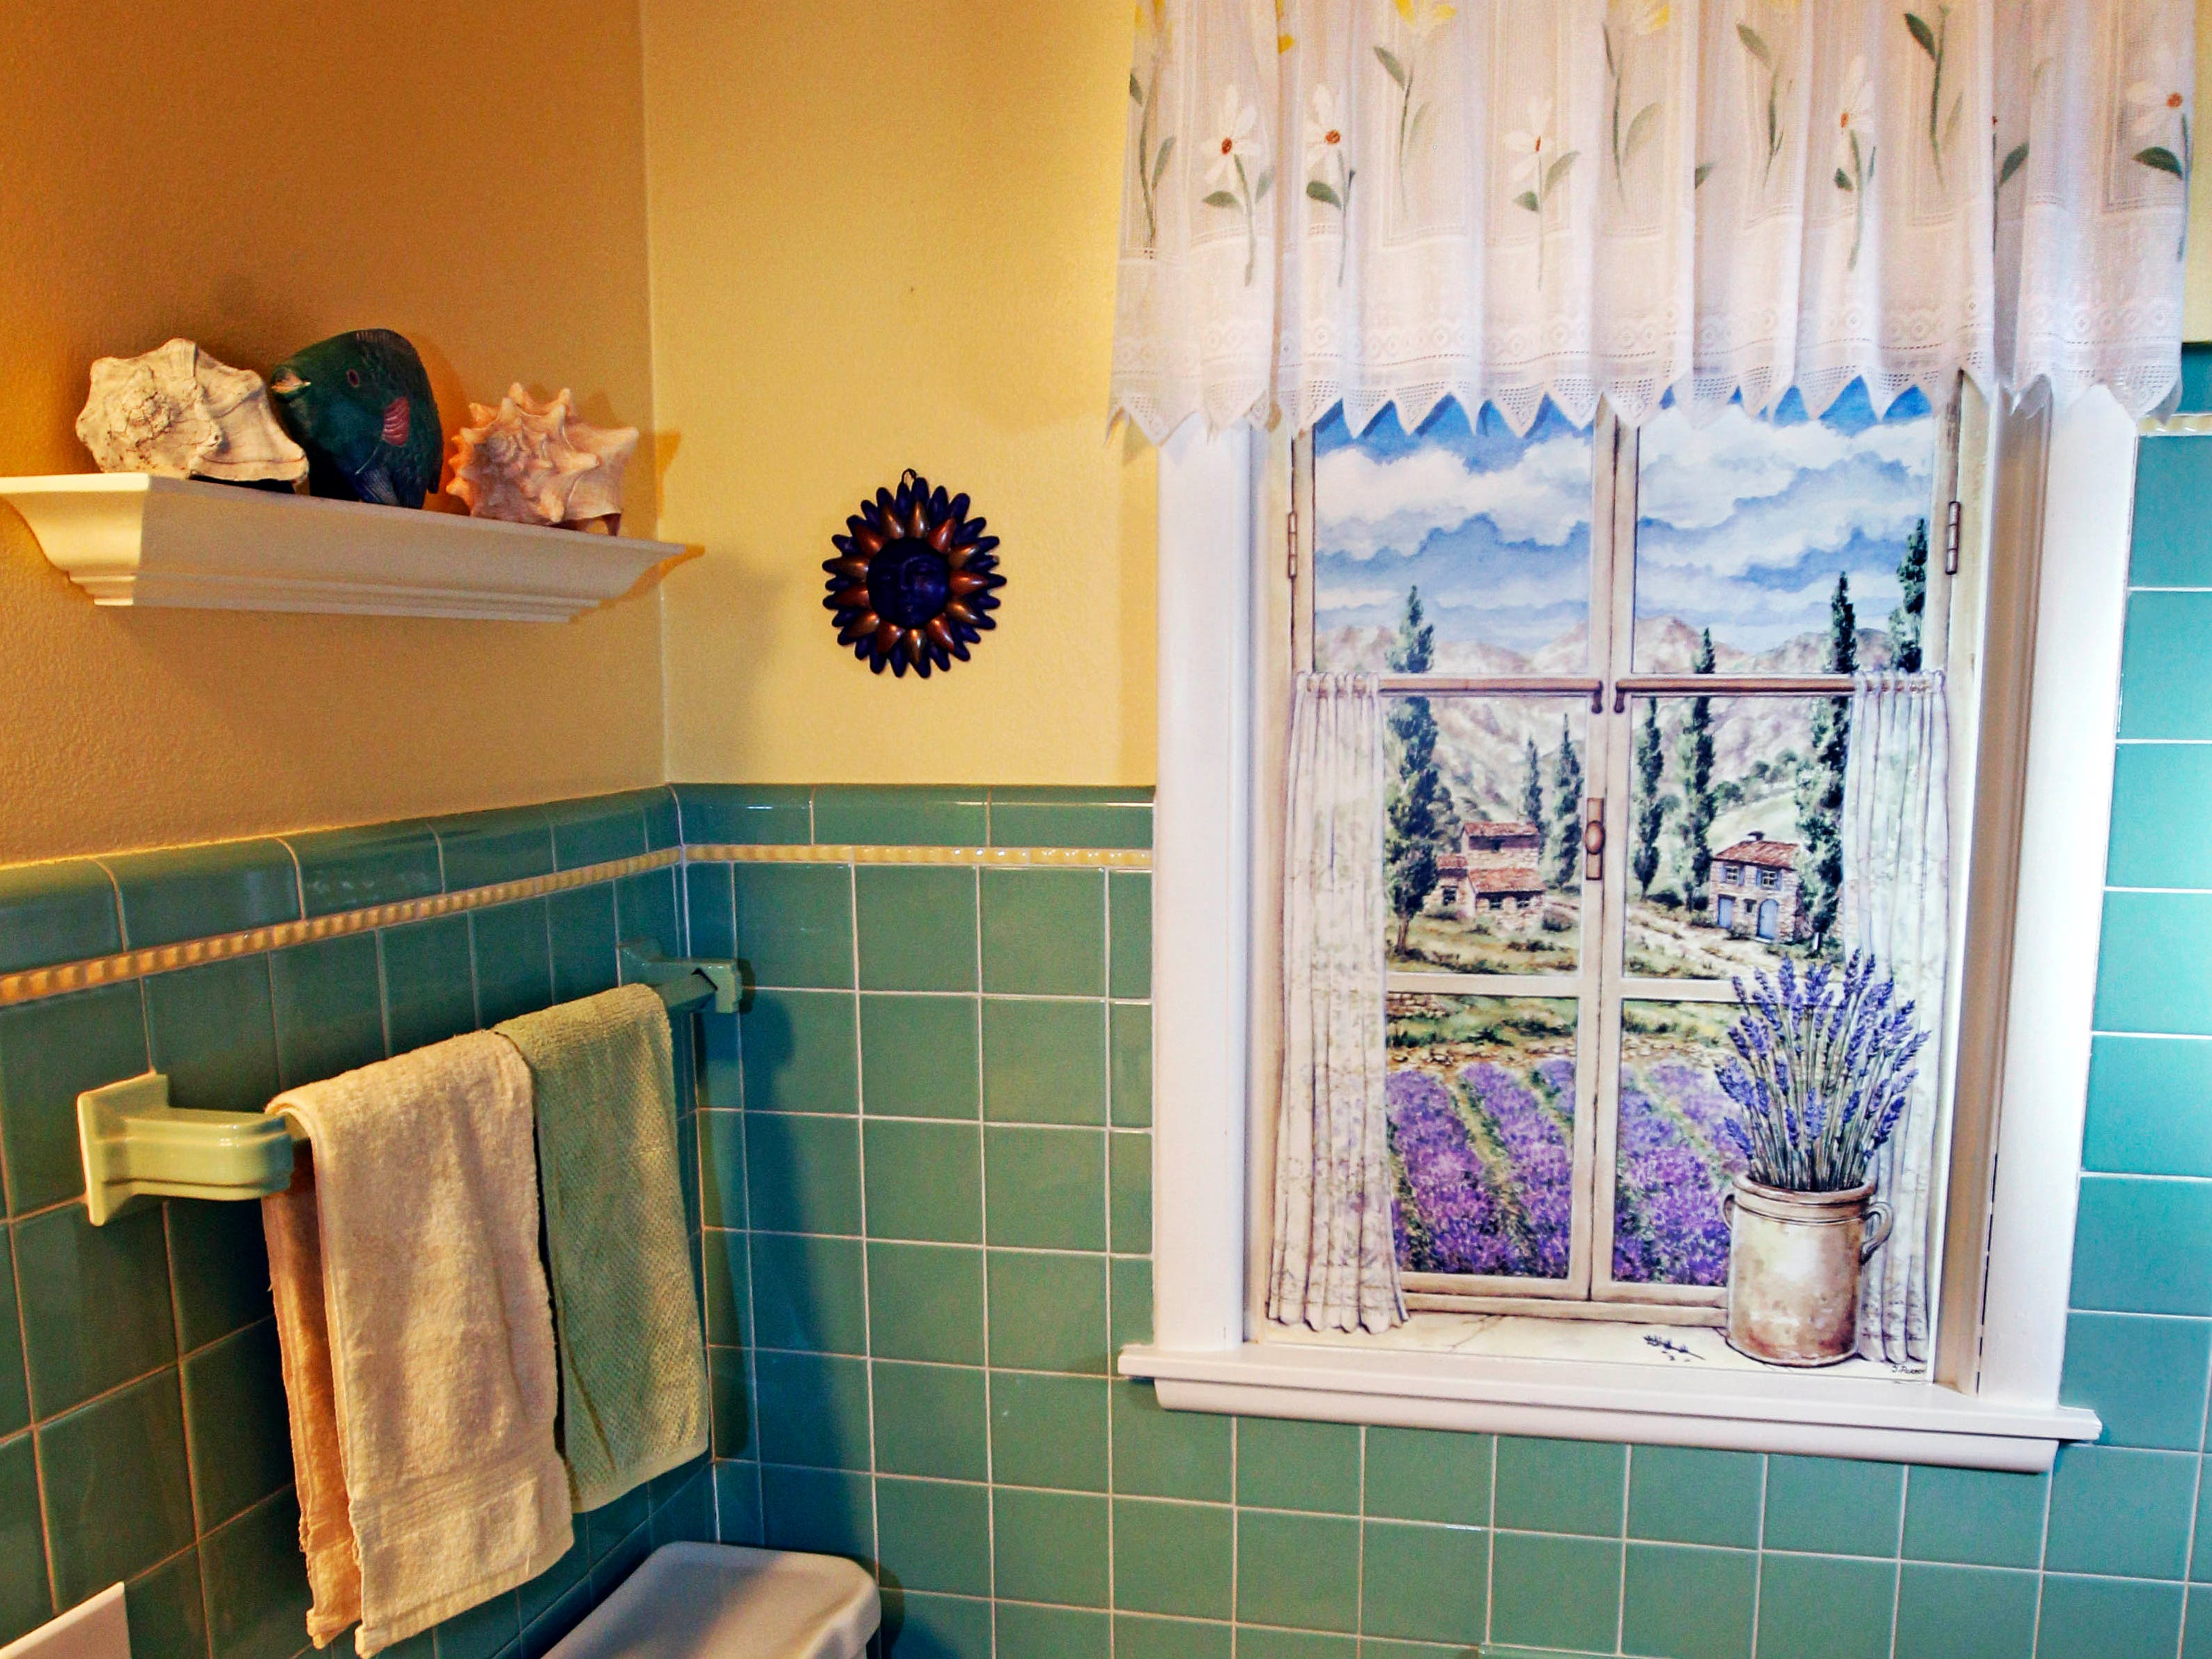 The homeowner deliberately left his bathroom in its original 1955 state. When the home was renovated in 1976, the window was closed off, so she added this painting of a window for effect.